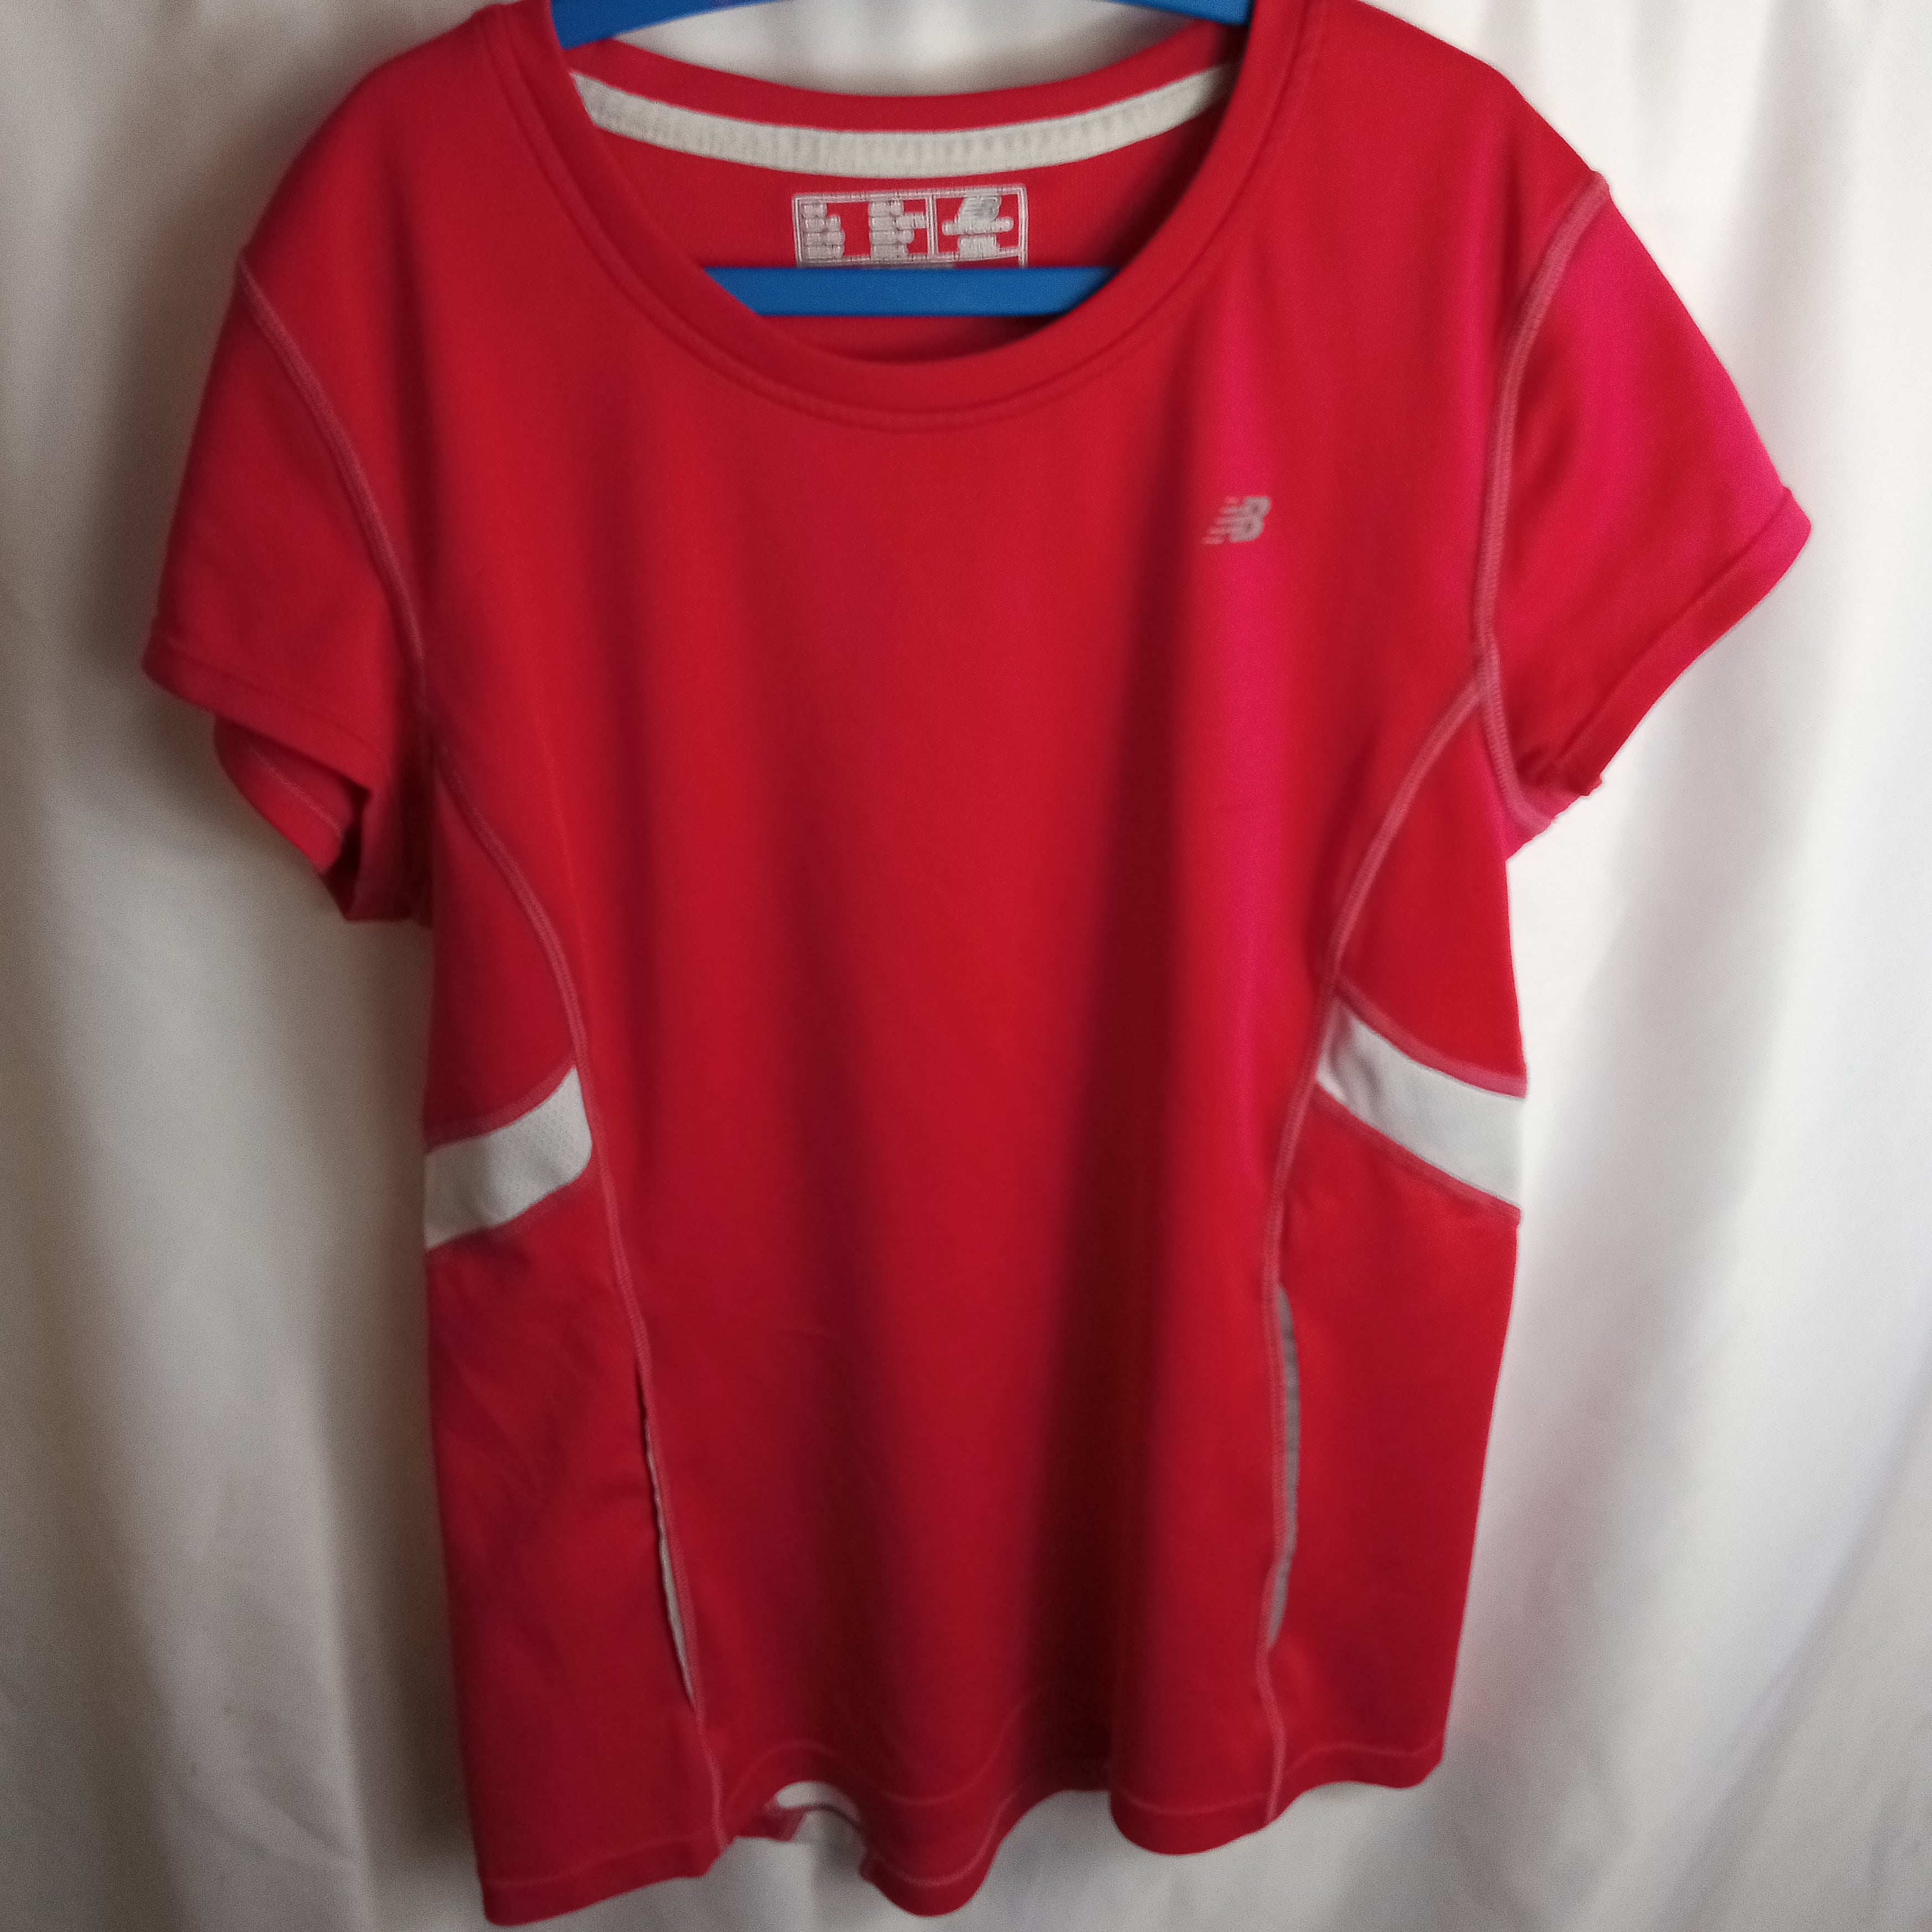 Pre-Loved New Balance Tee Size M Condition Good